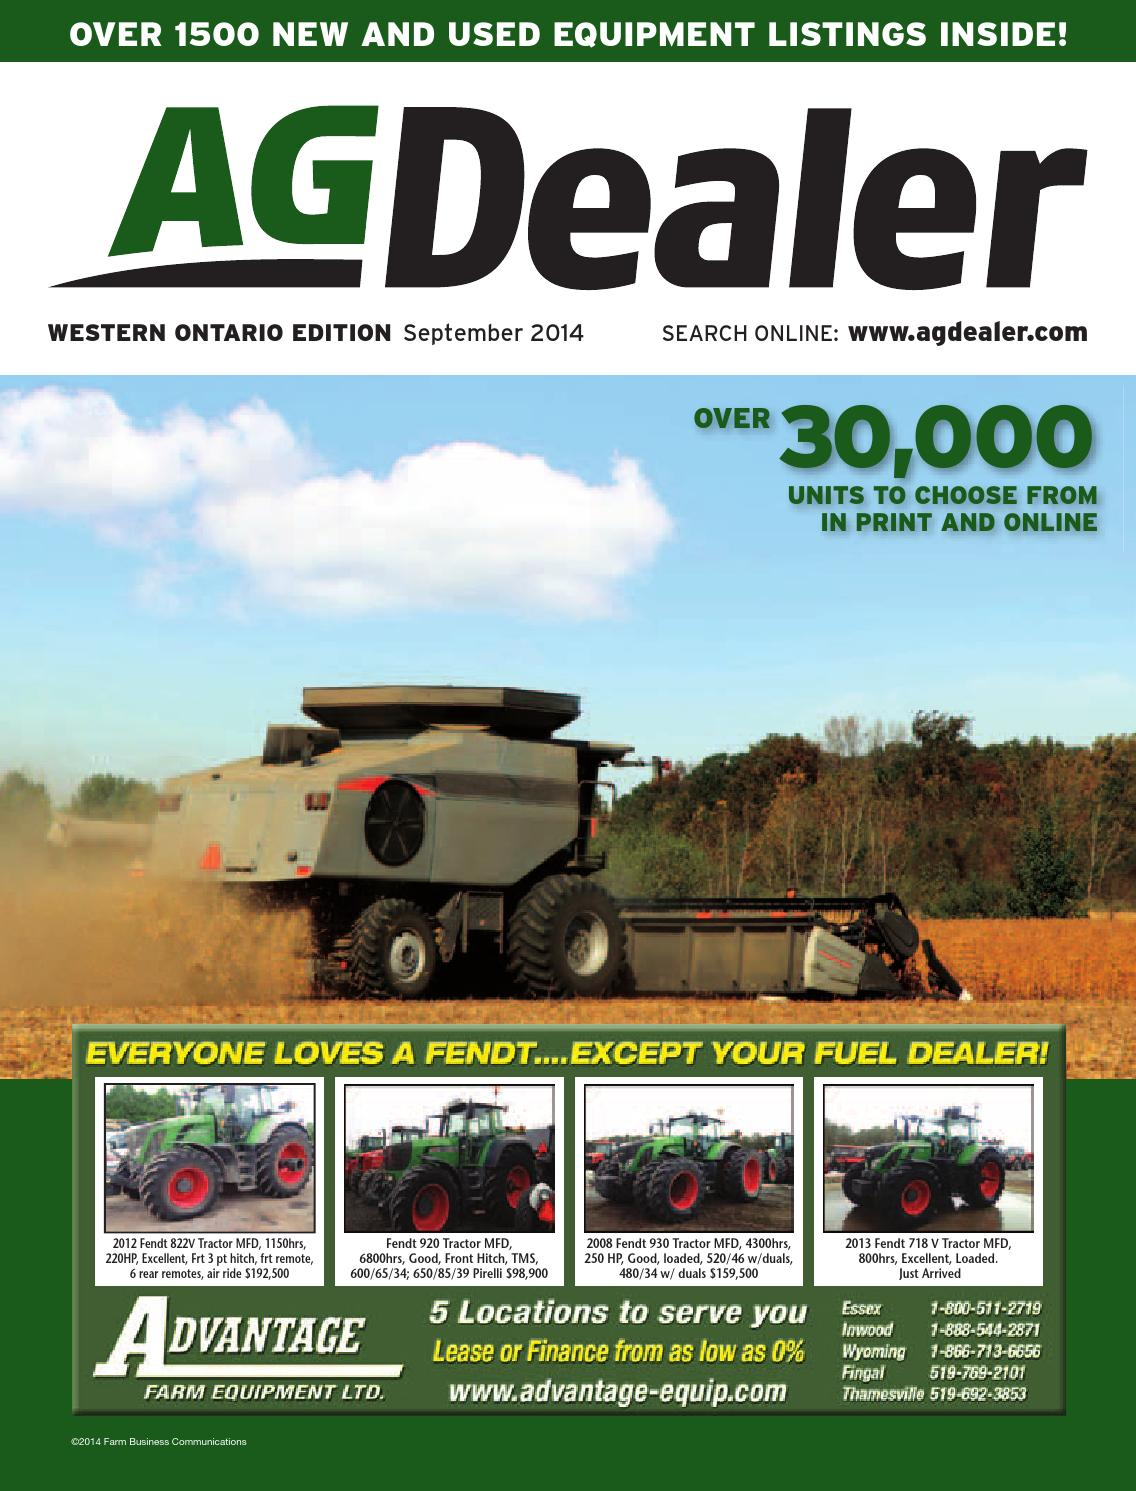 AGDealer Western Ontario Edition, September 2014 by Farm Business  Communications - issuu